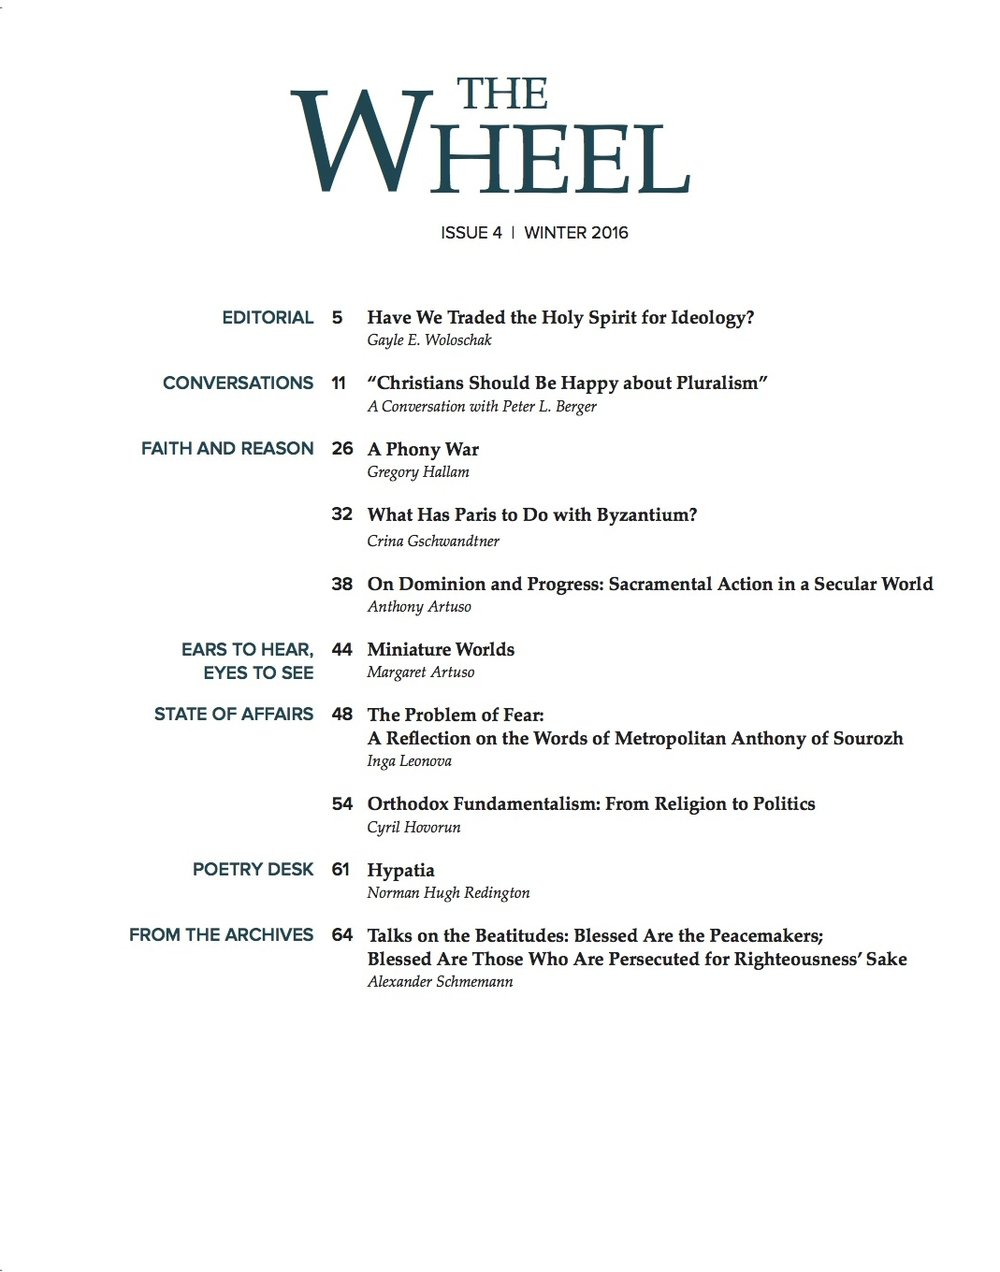 wh-issue-4-contents